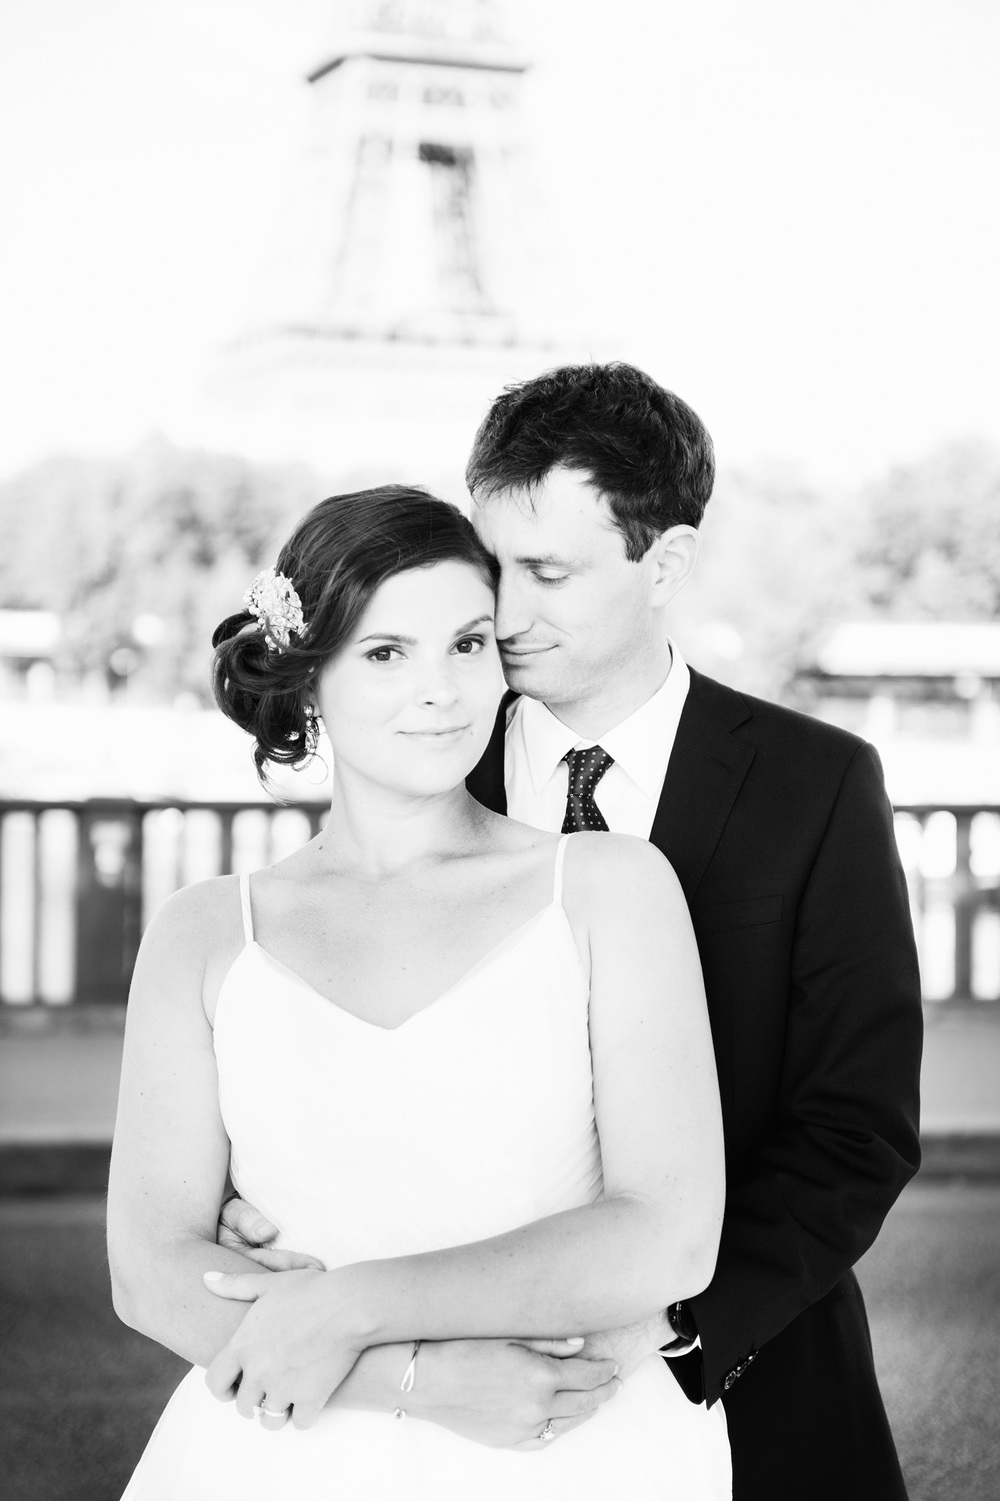 008-paris-elopement-katie-mitchell-photography.jpg